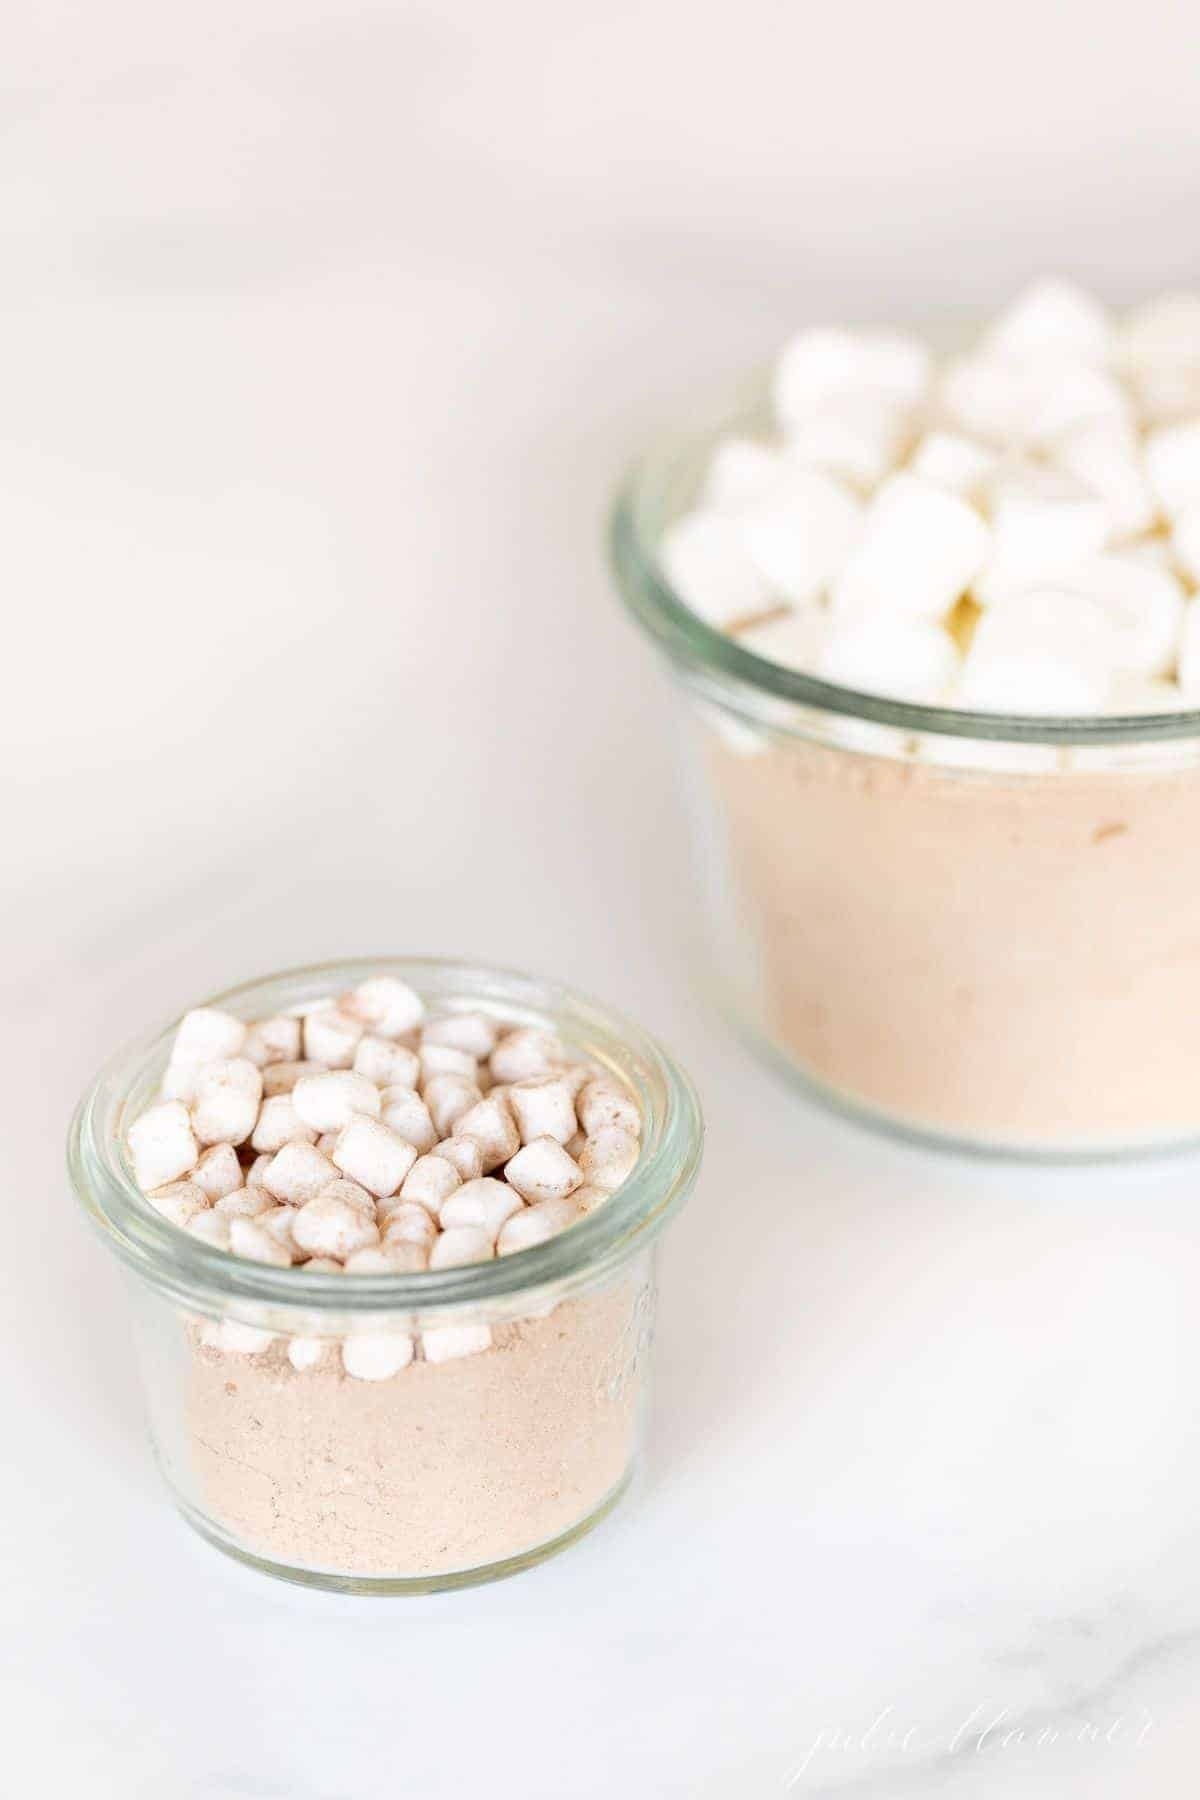 Two glass jars full of homemade hot chocolate mix topped with small marshmallows.